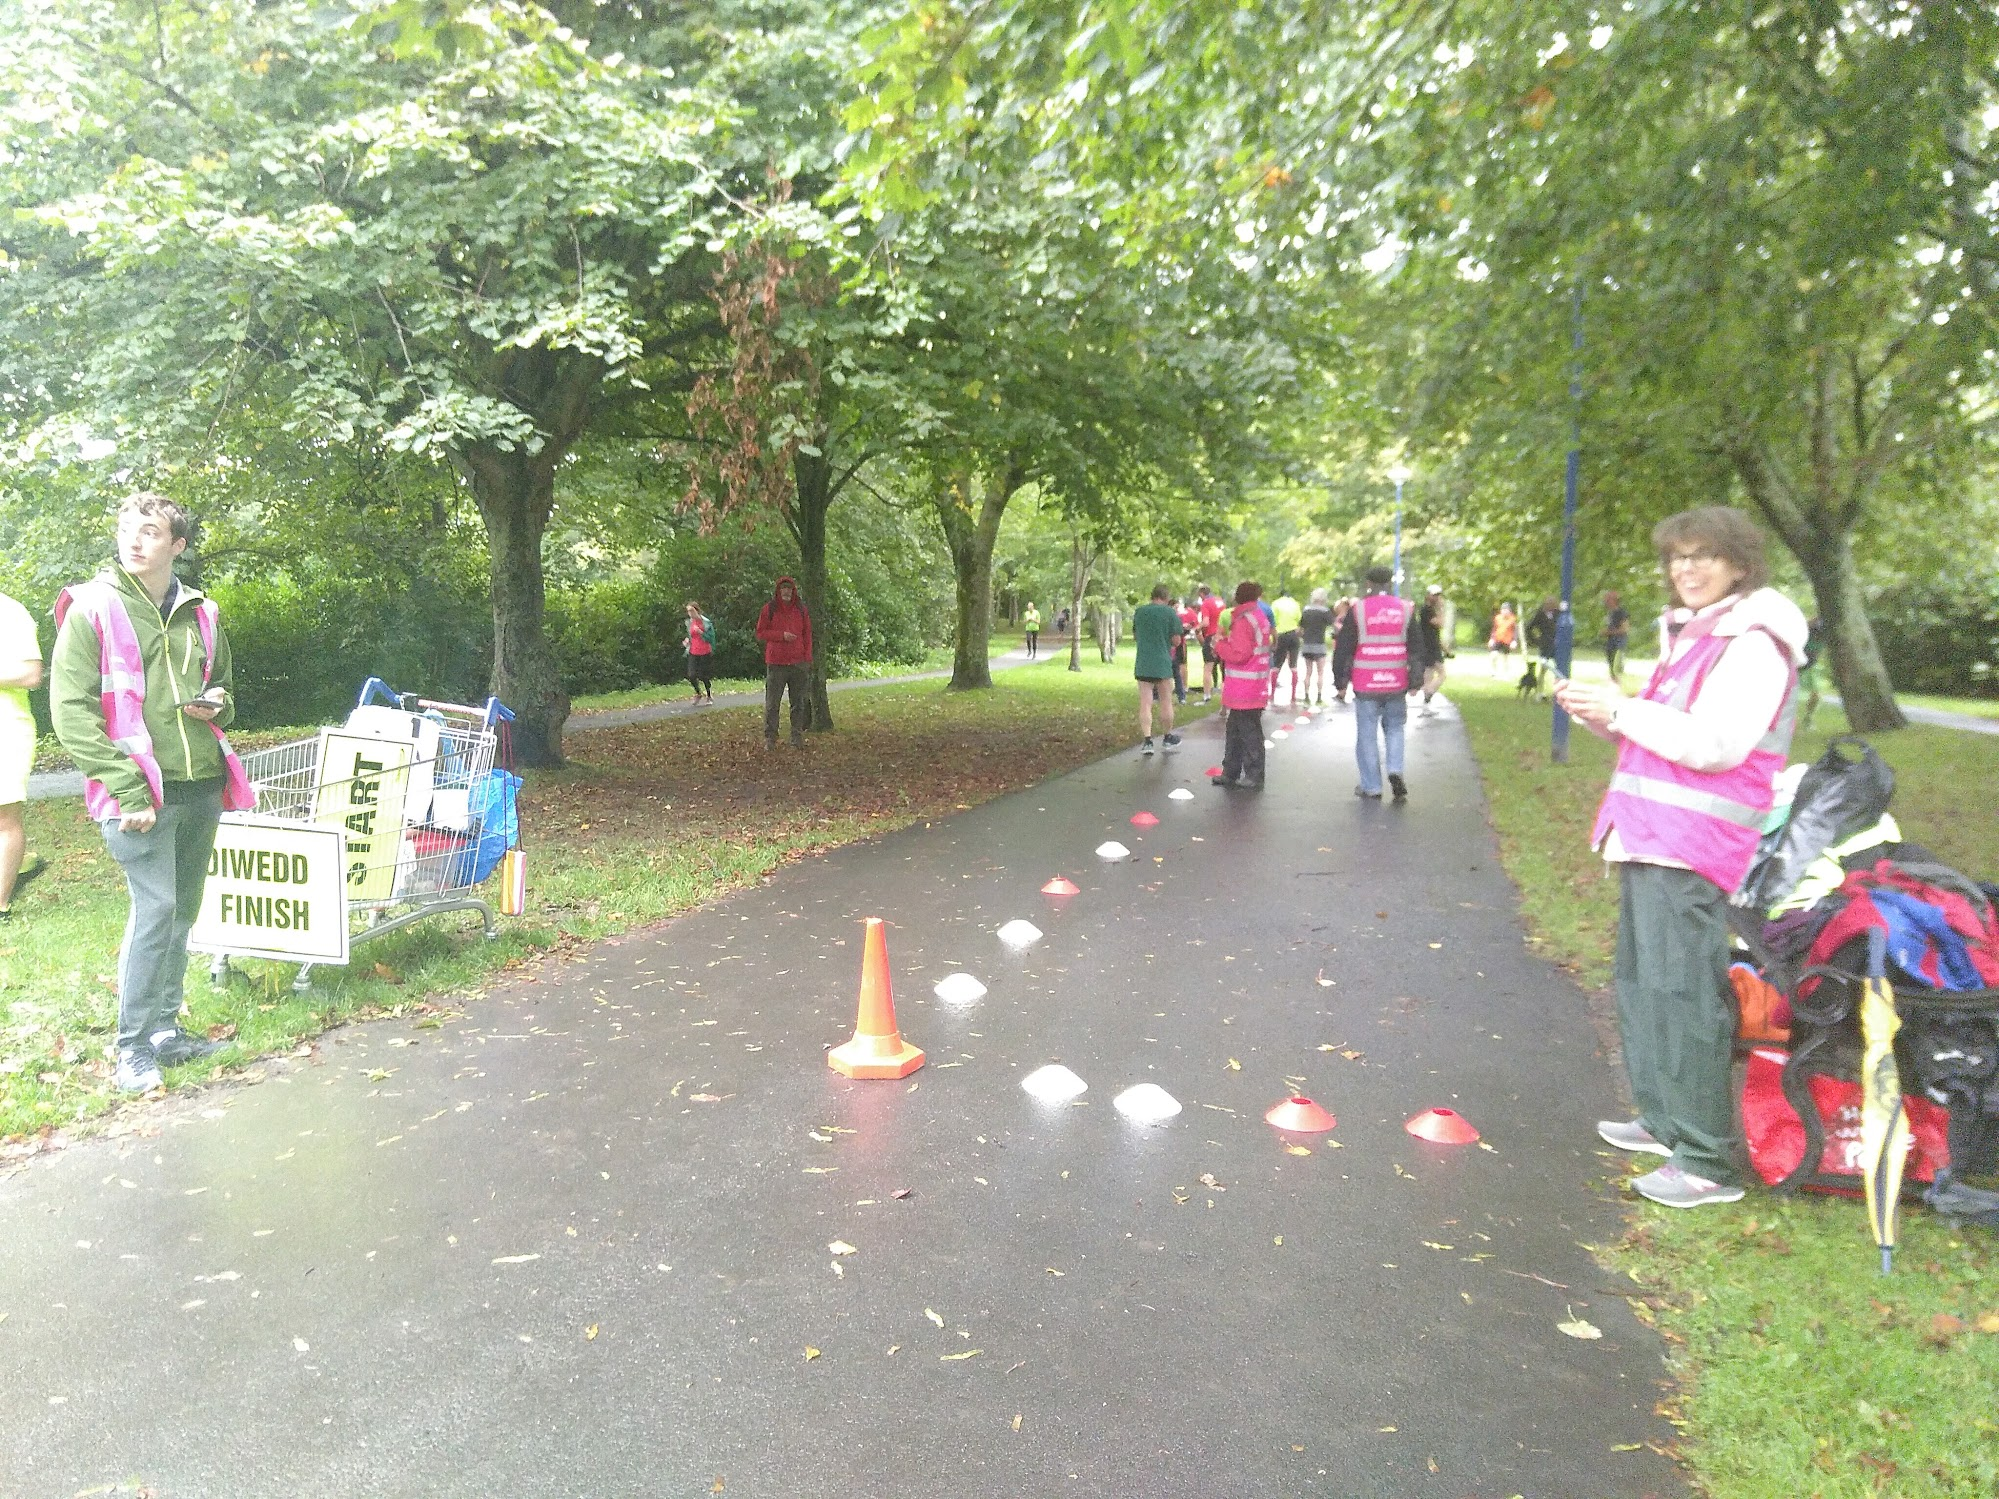 The volunteers at the finish area